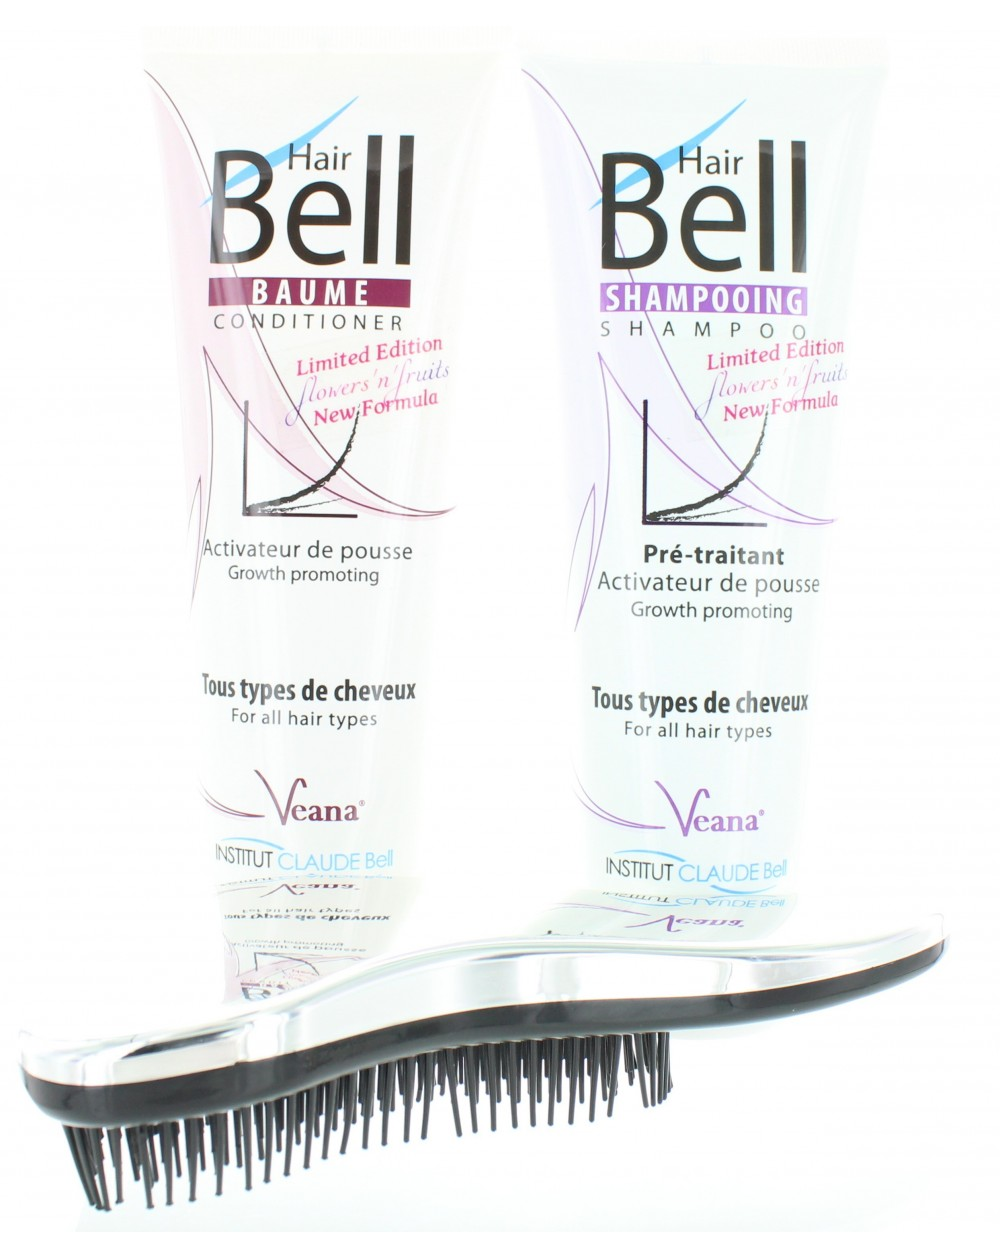 HairBell Shampoo + Conditioner flowers and fruits + DeTangler silber metallic